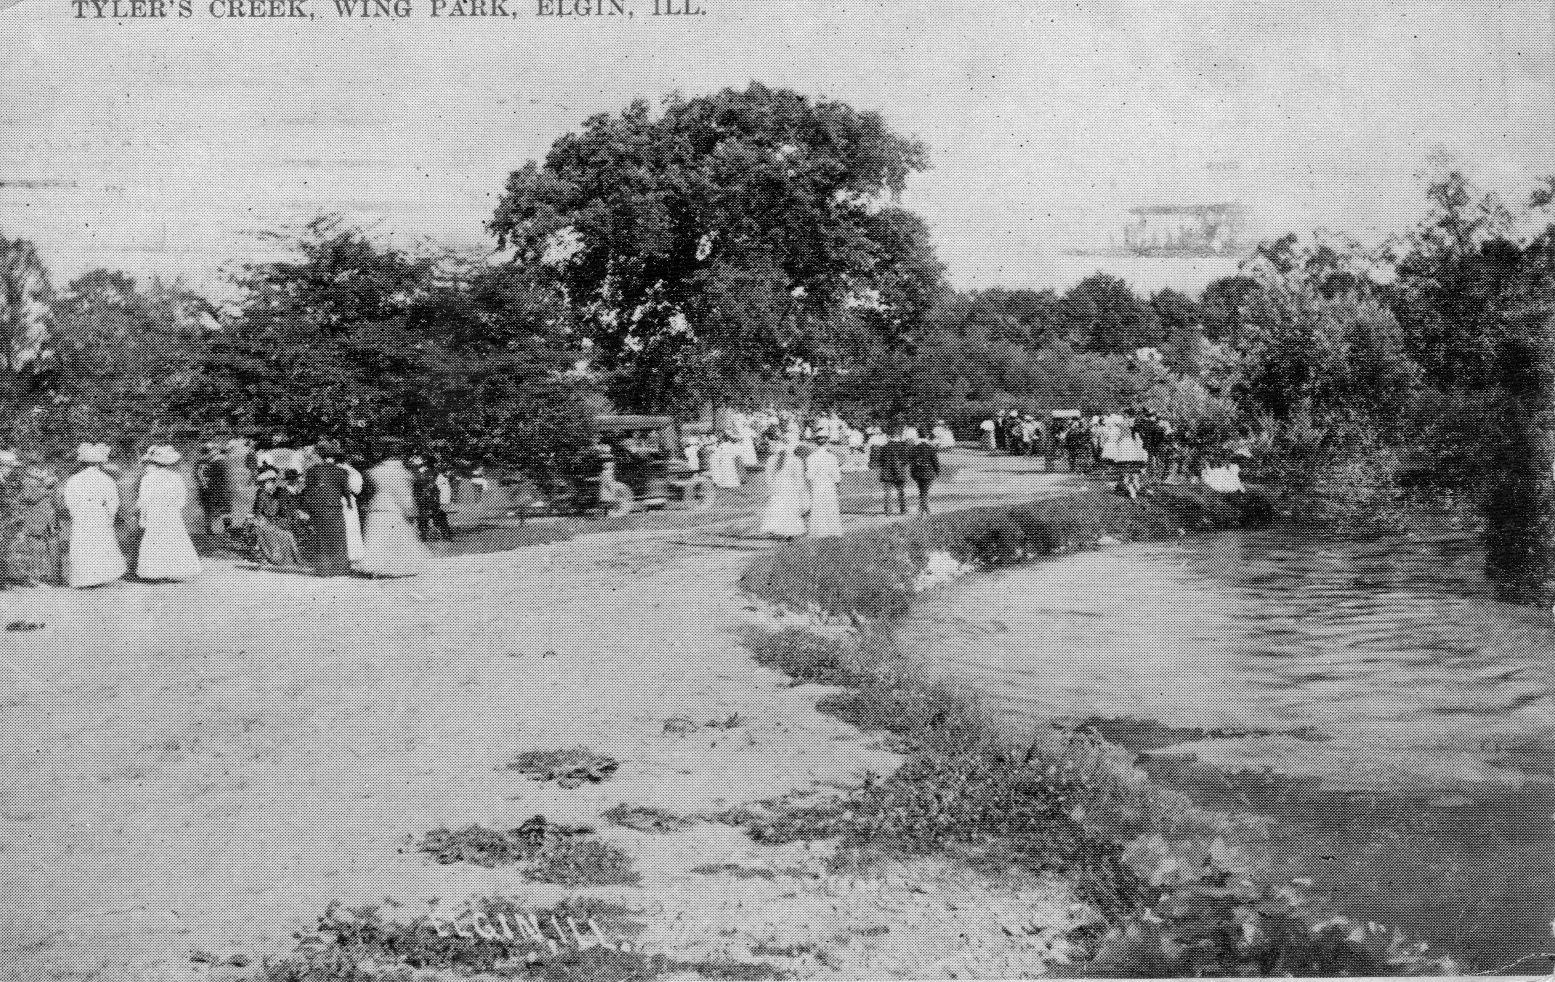 Wing-Park-and-Tyler-Creek-1905.jpg